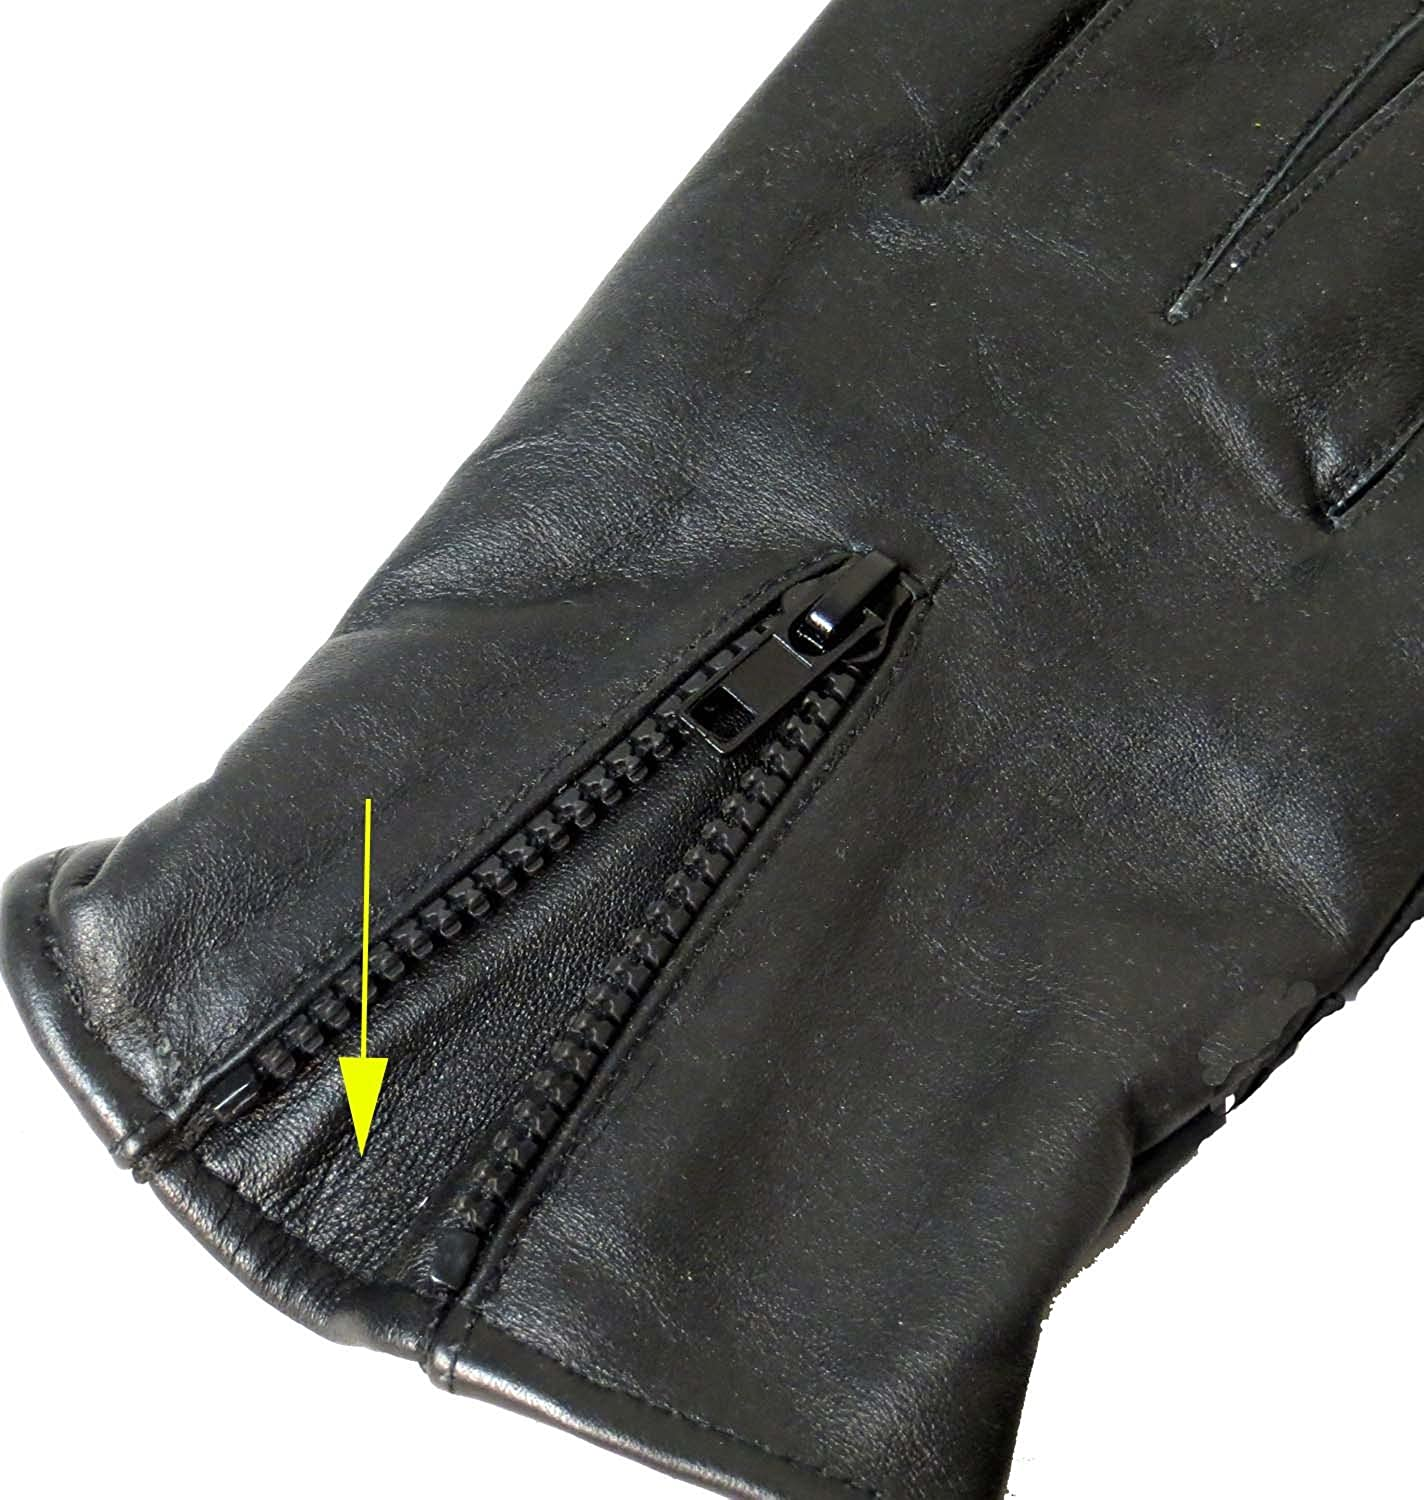 Genuine Leather Unisex Windproof Thermal Full Finger Warm Fleece Lined Driving Gloves 2140 US (Large)